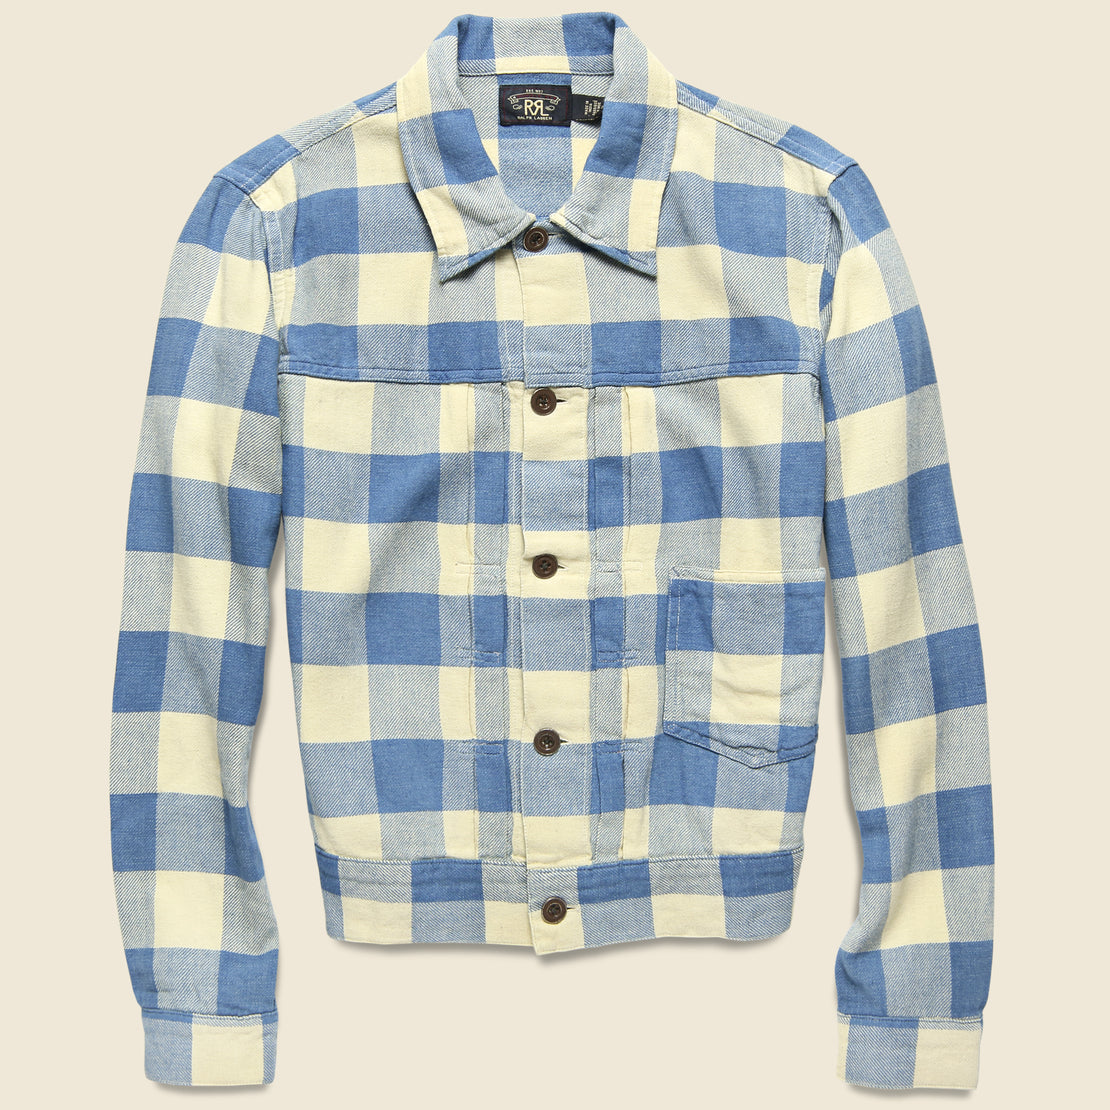 RRL Buffalo Plaid Casey Overshirt - Indigo/Cream